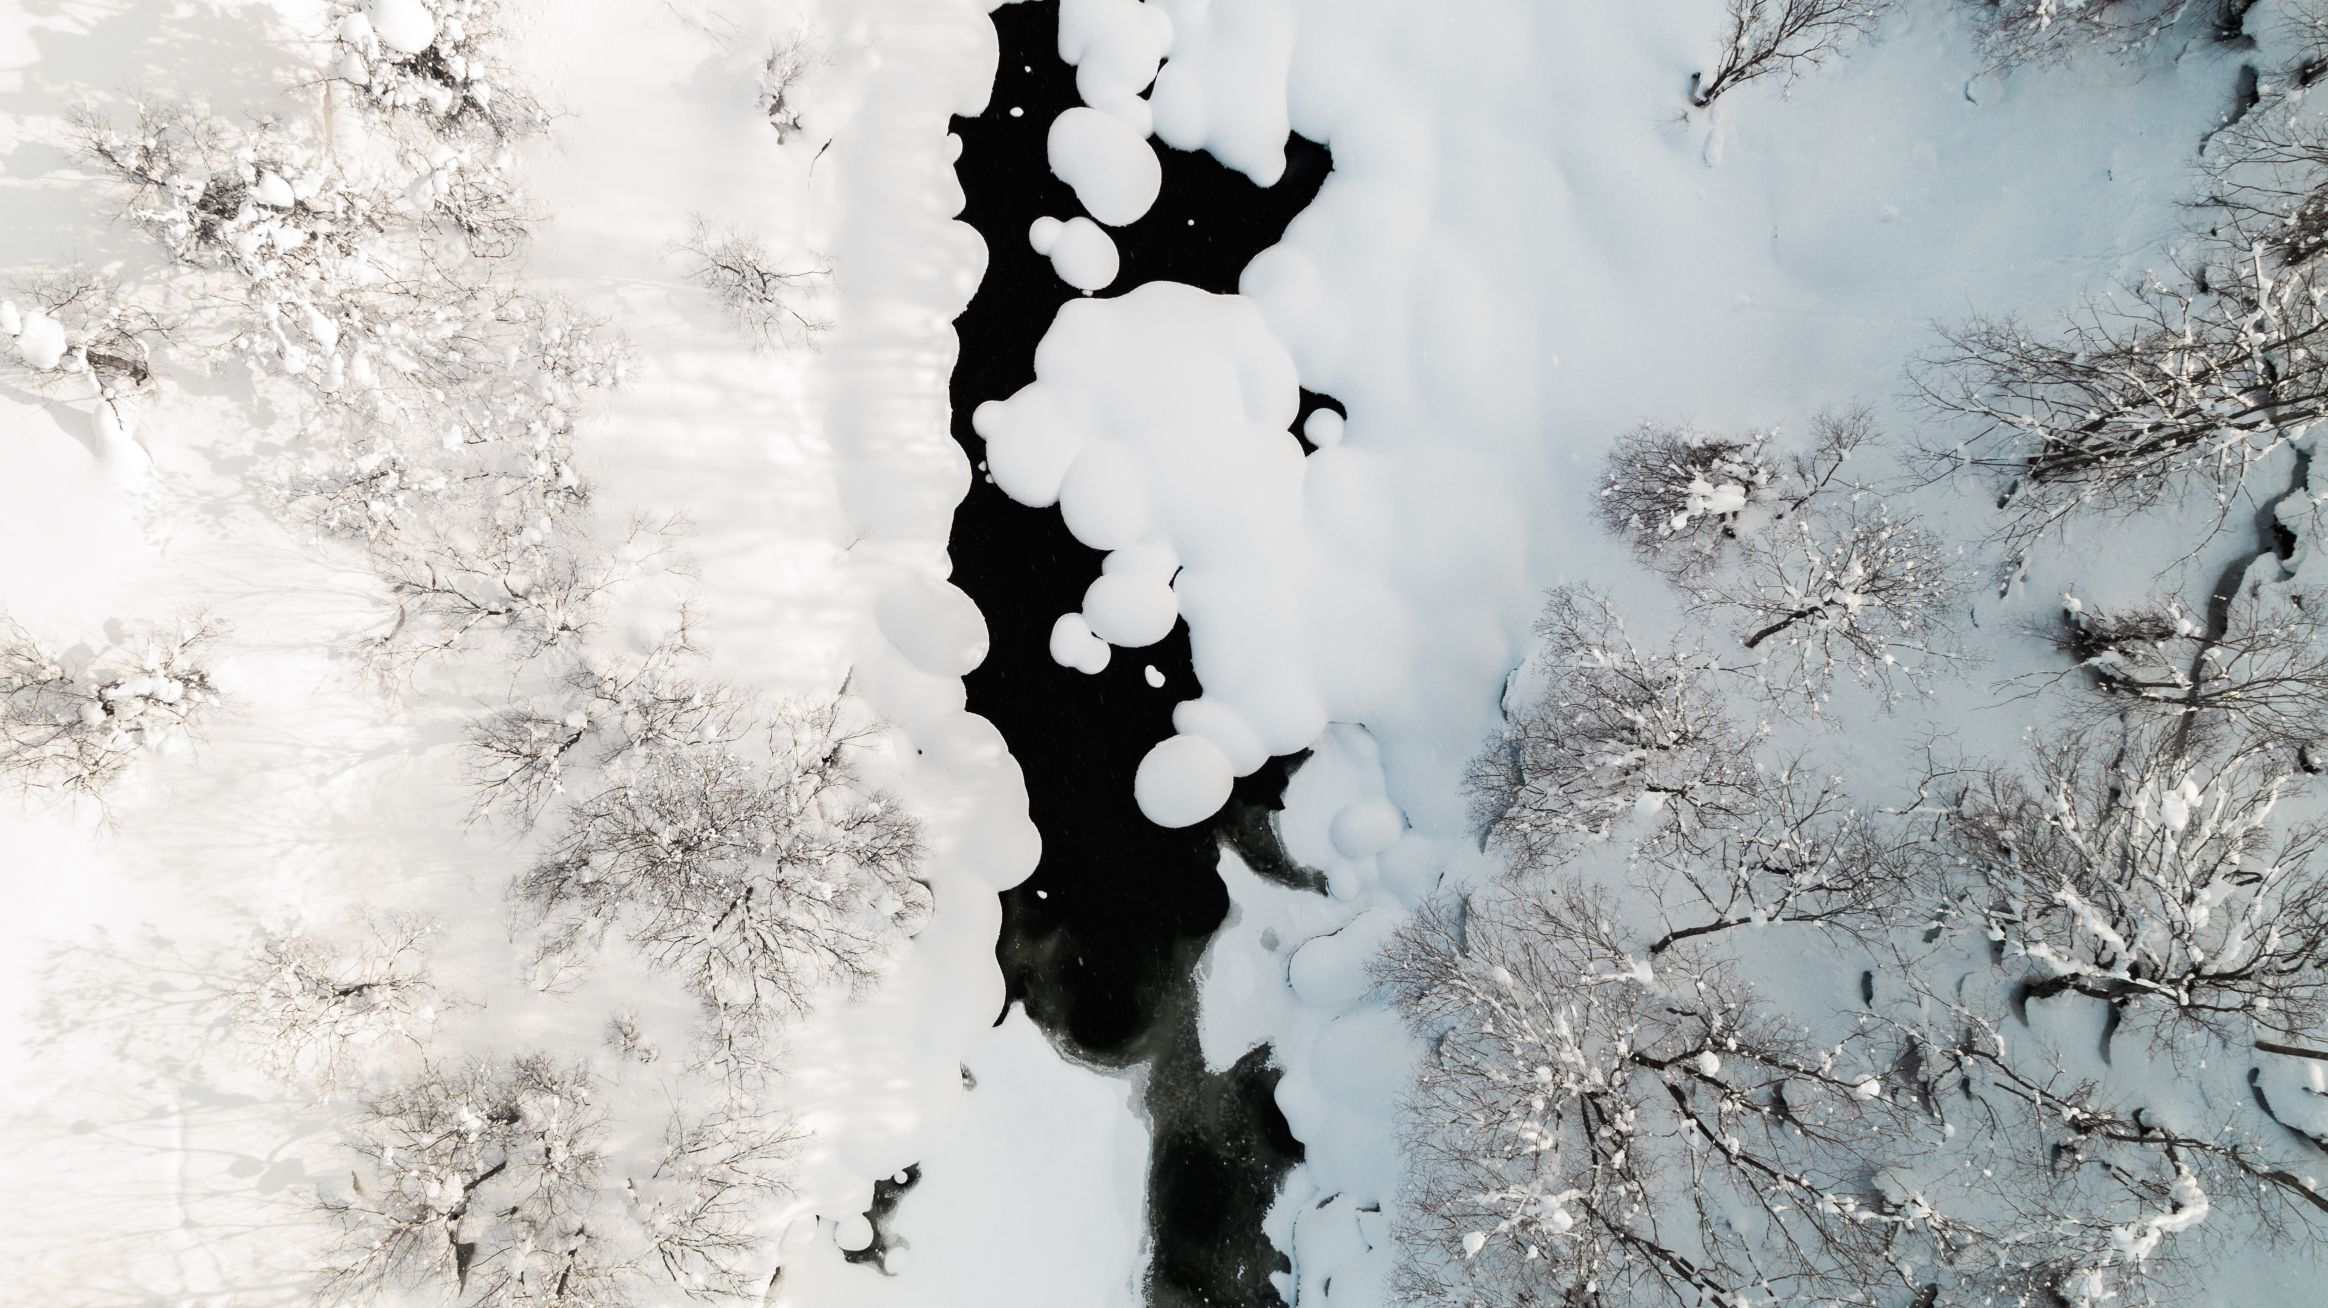 Aerial view of snowing river and forest.